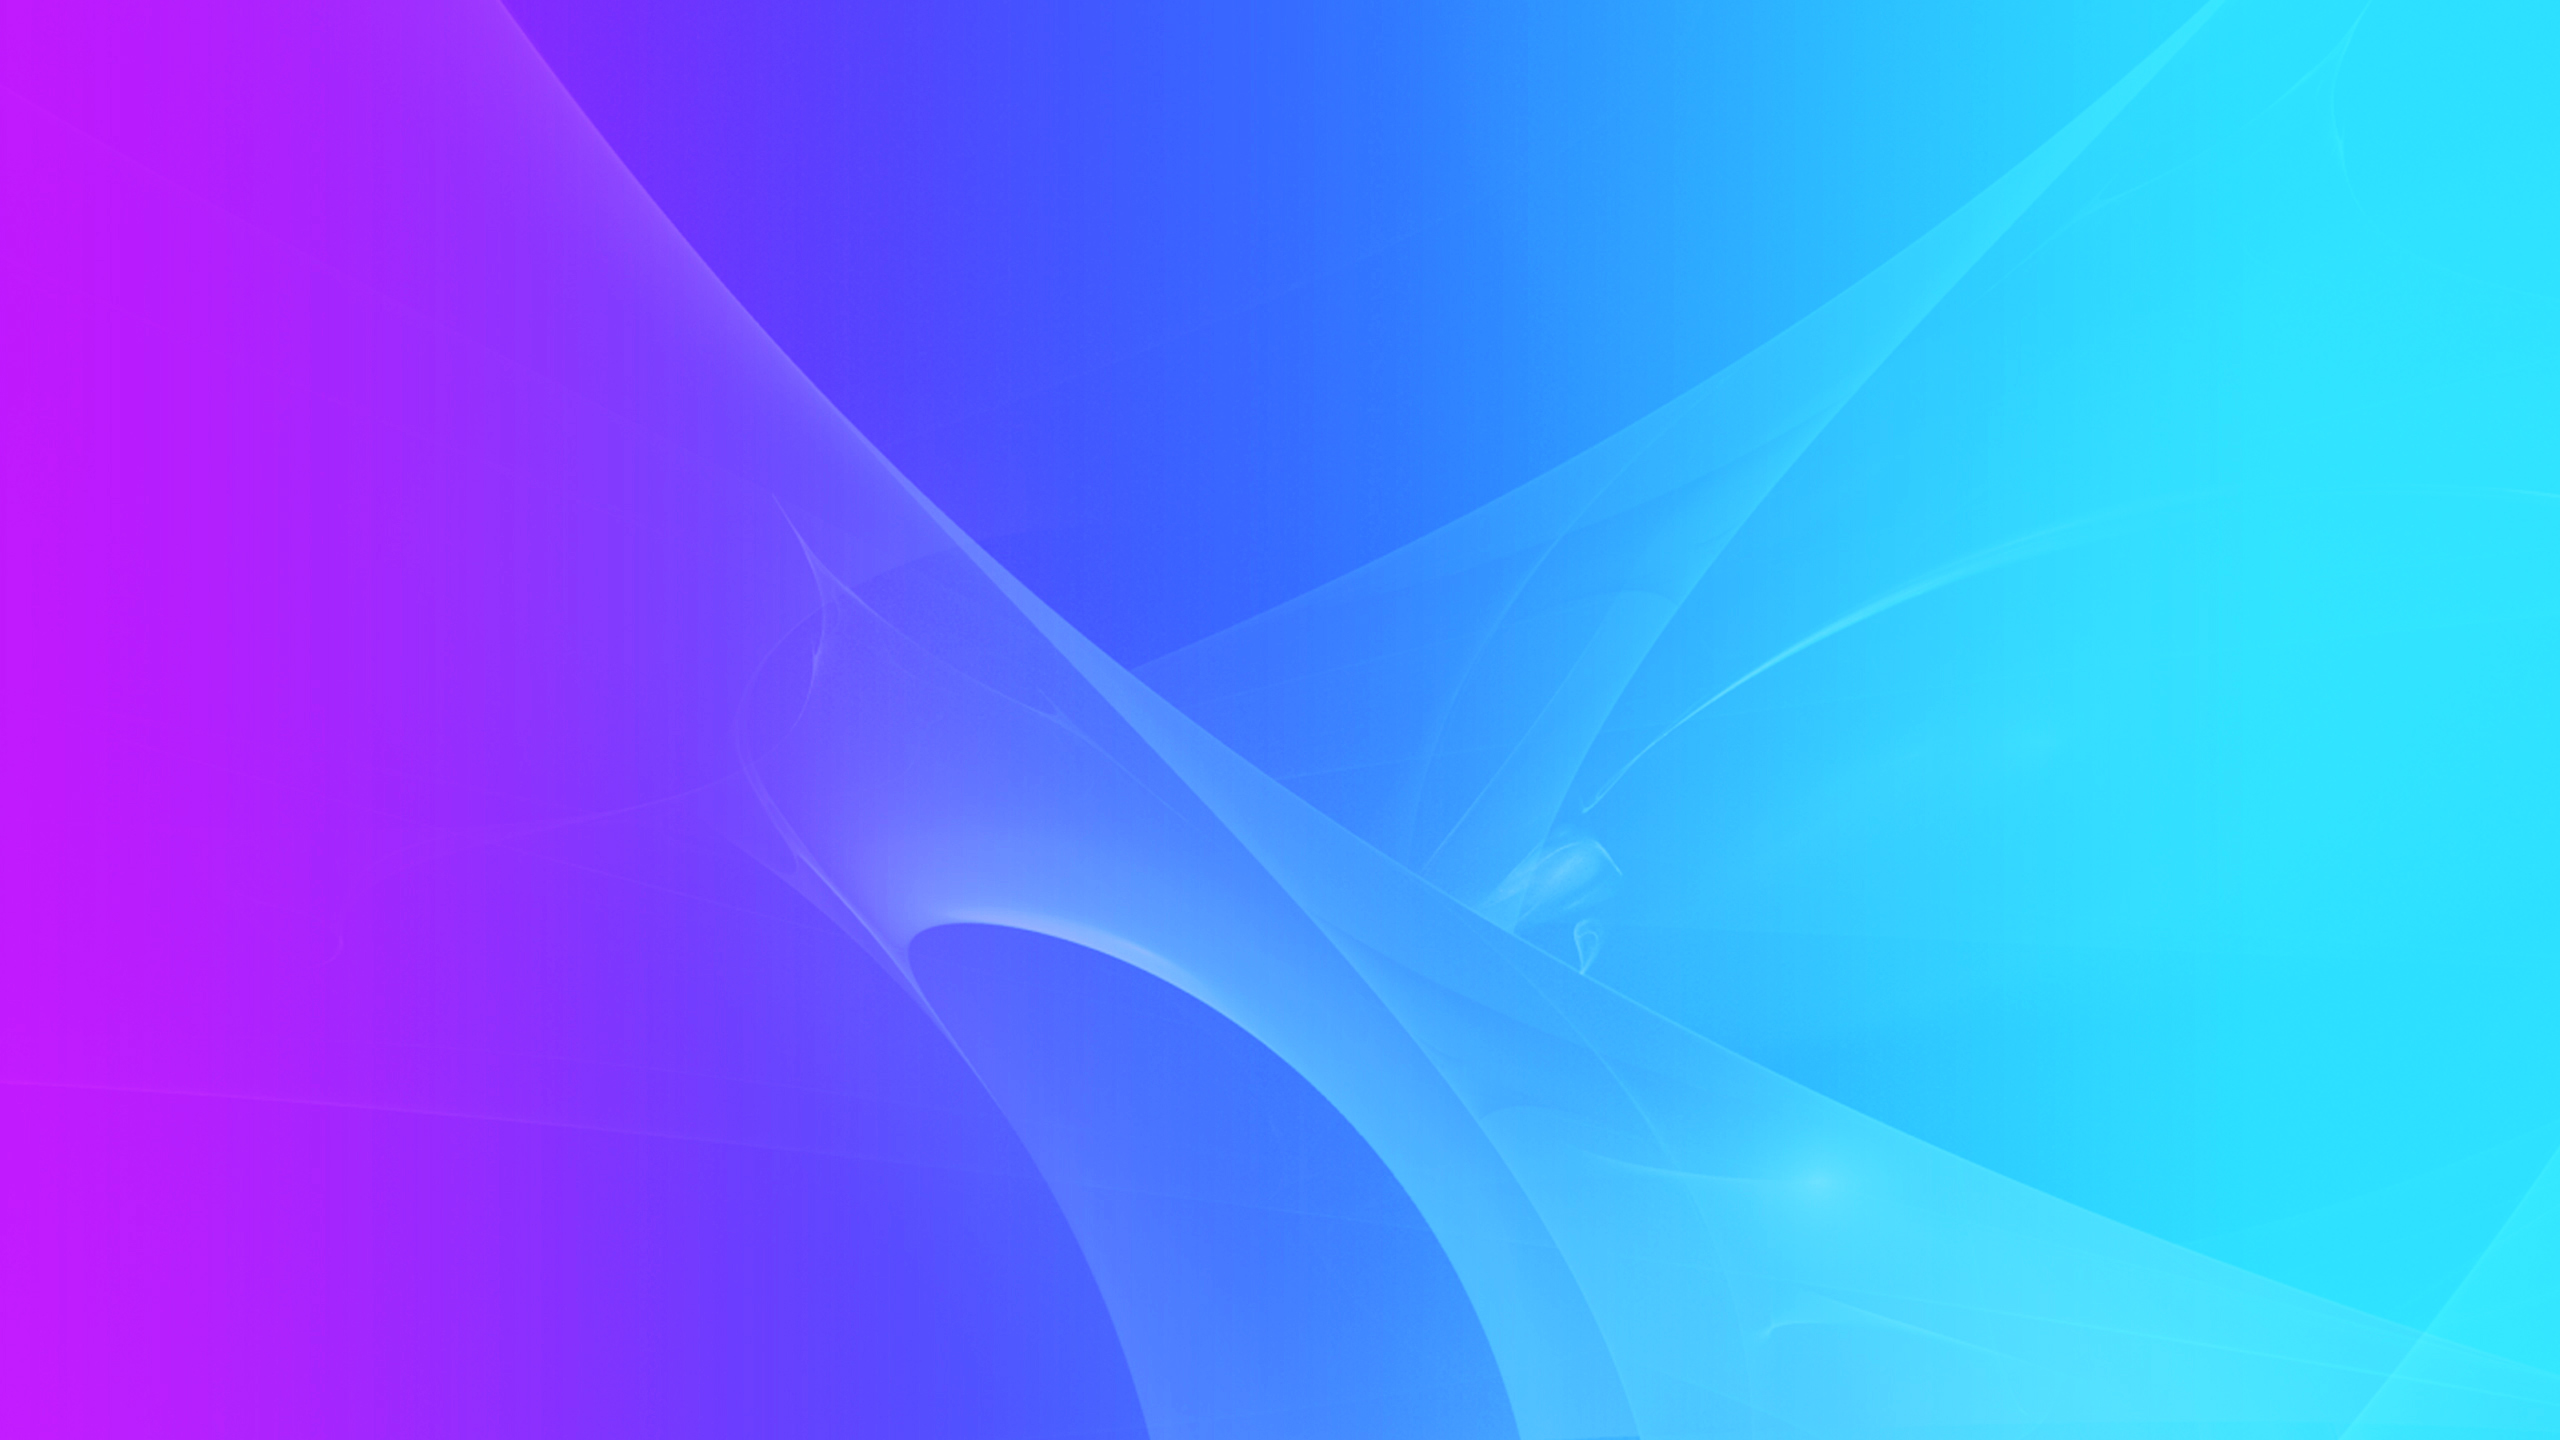 Blue and Purple Abstract Wallpaper HD